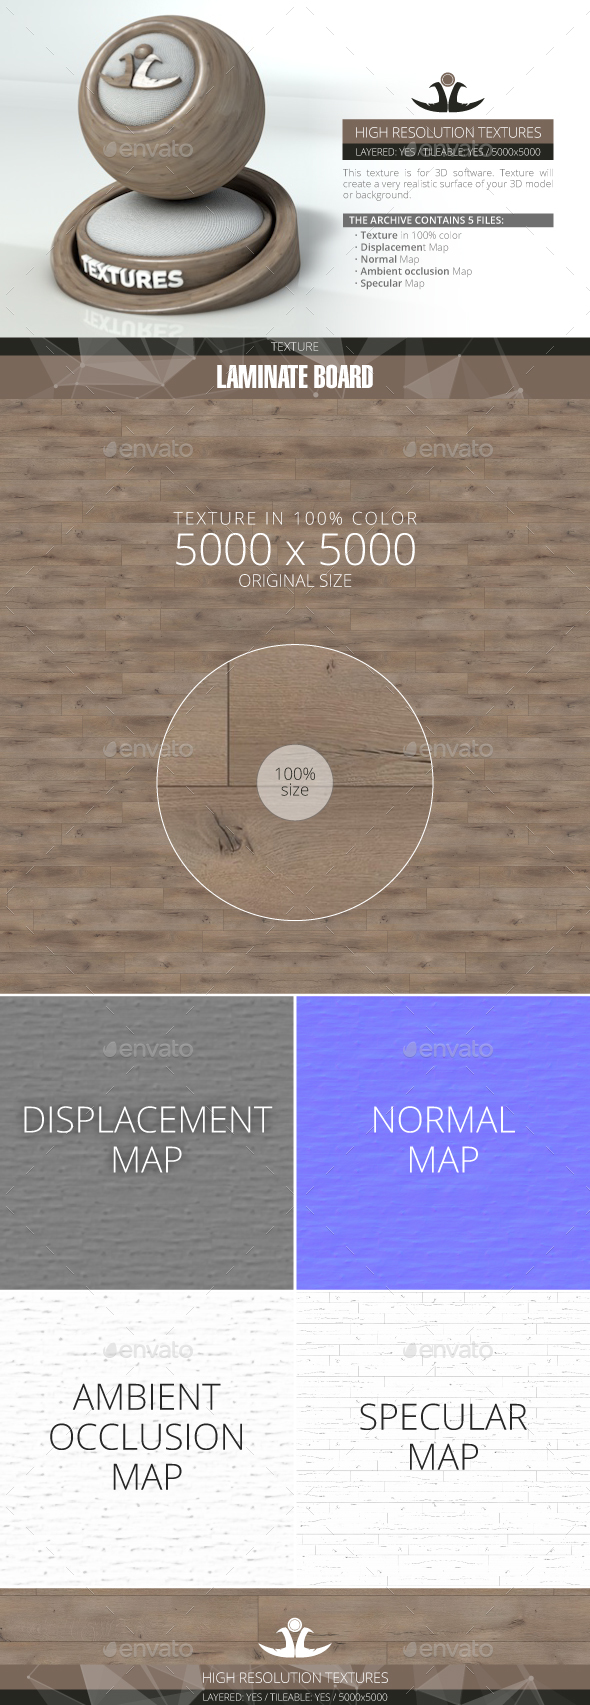 Laminate Board 69 - 3DOcean Item for Sale